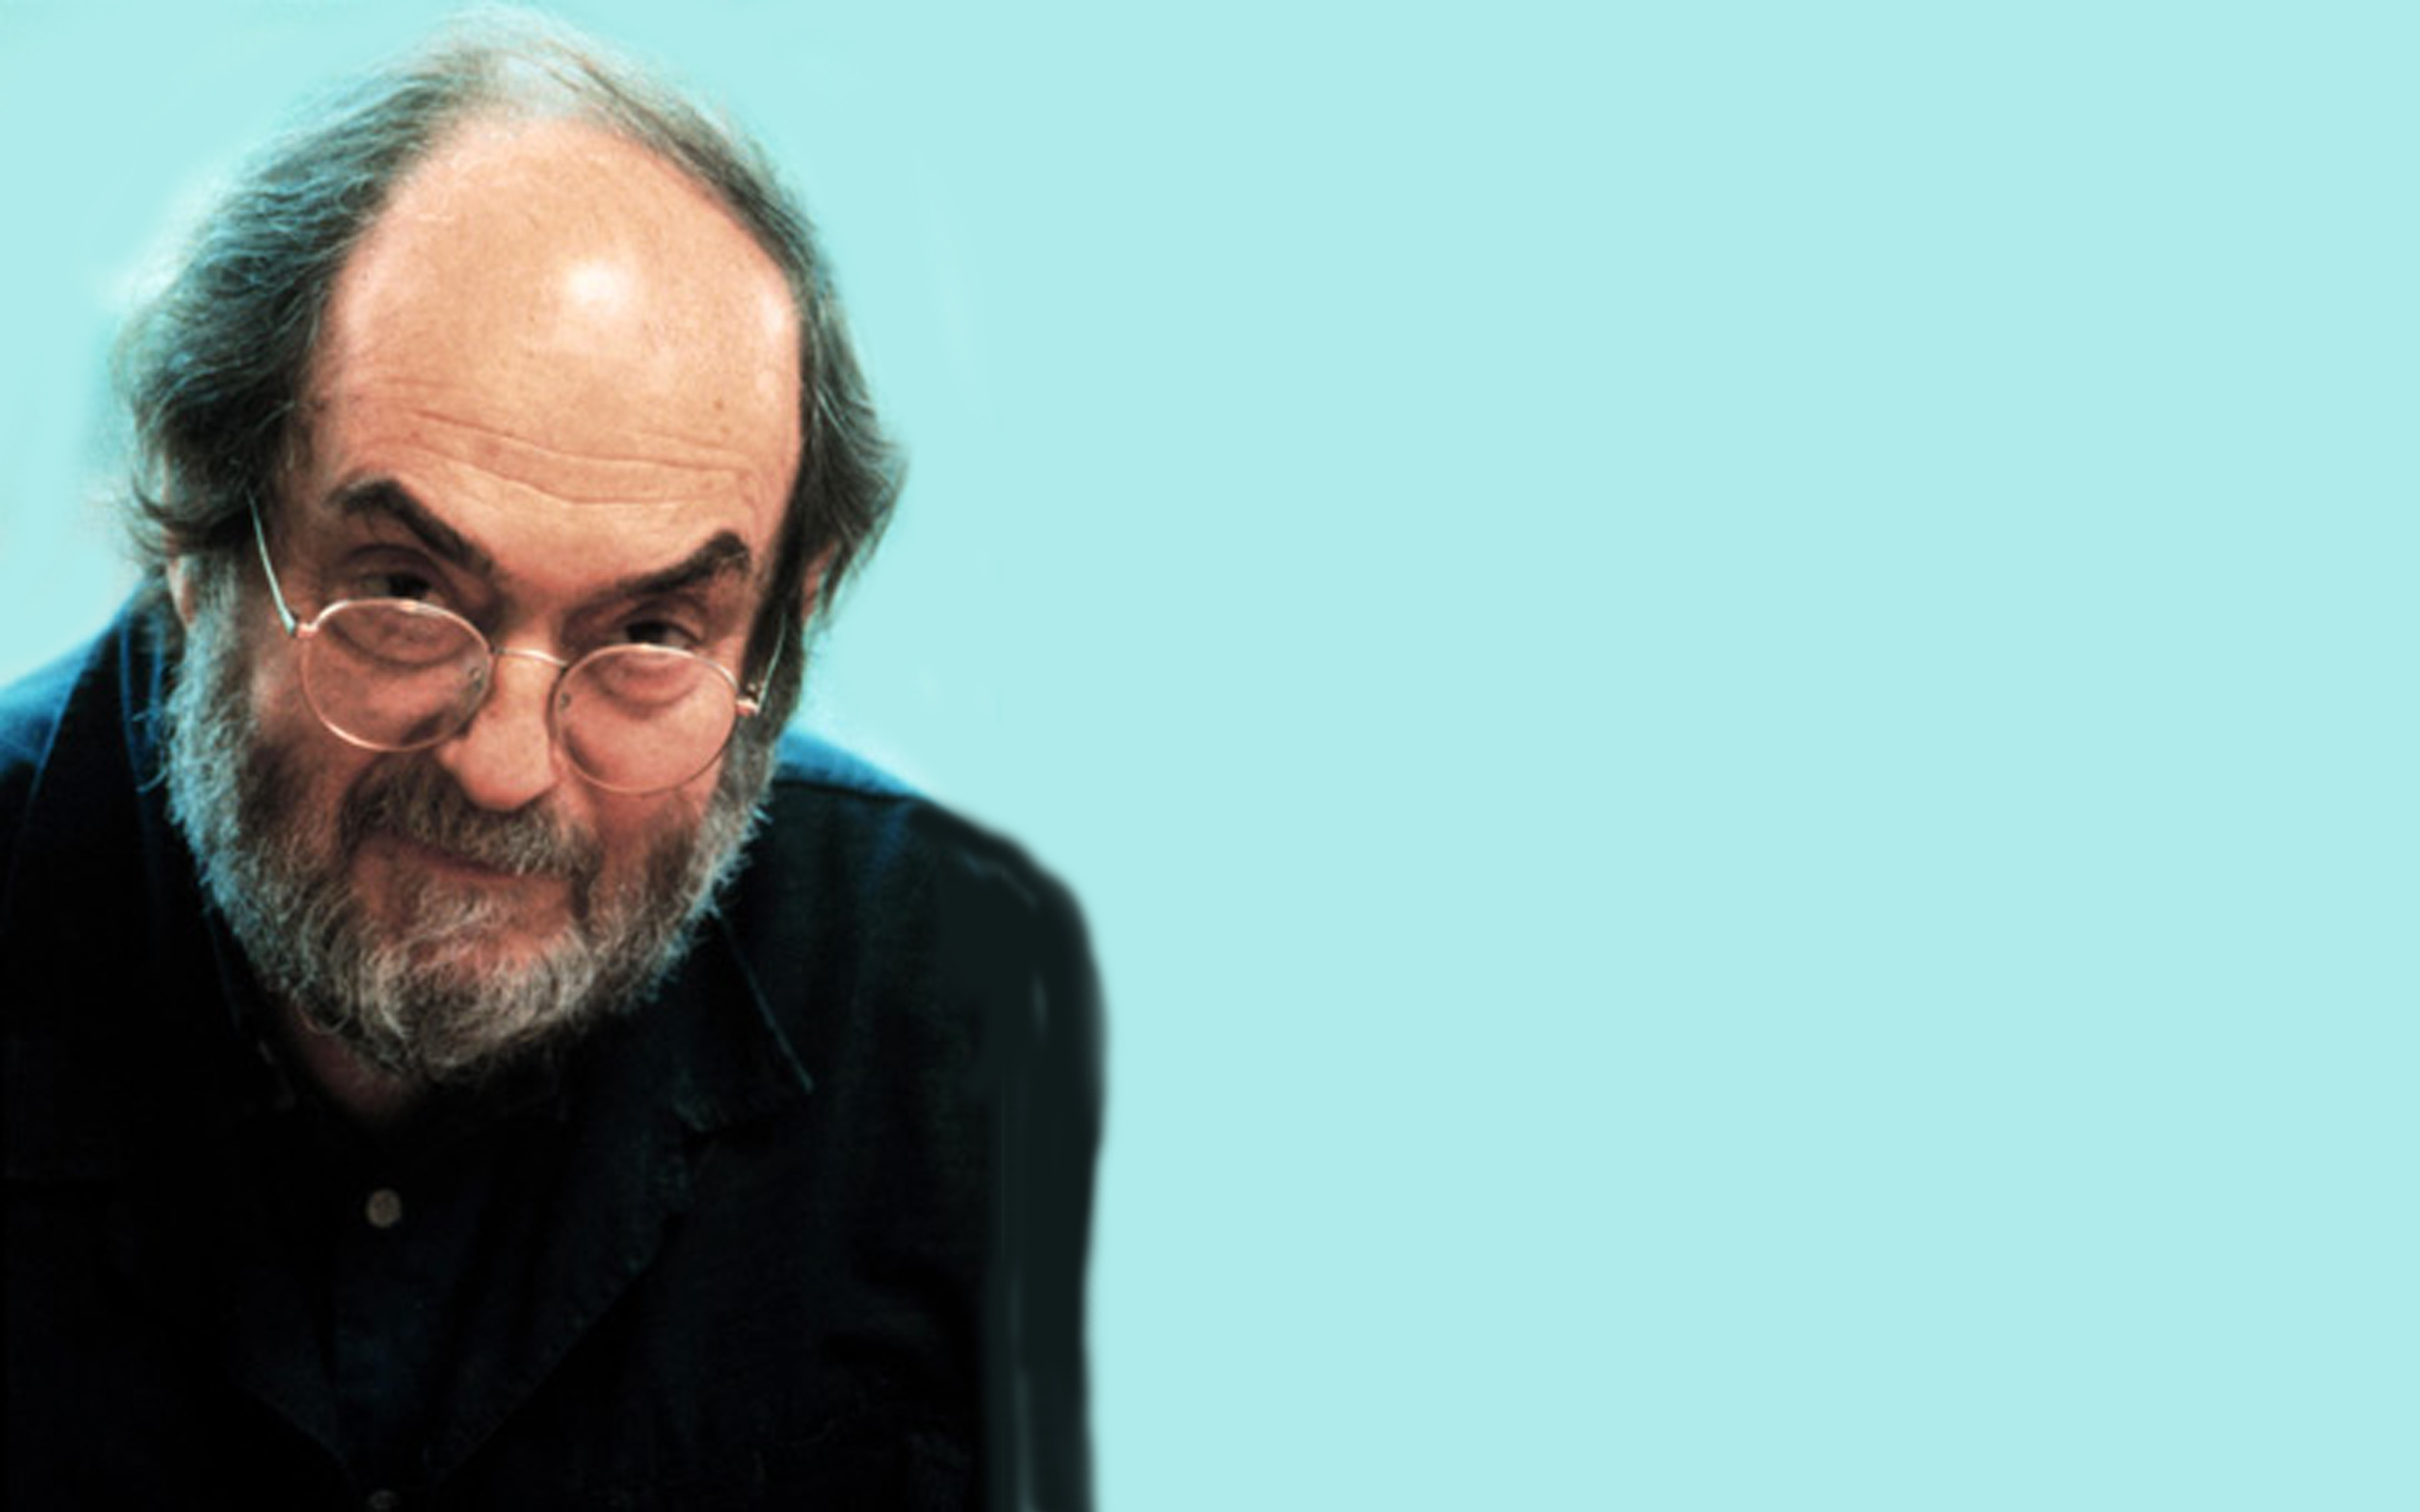 Stanley Kubrick Wallpaper 2560x1600 65026